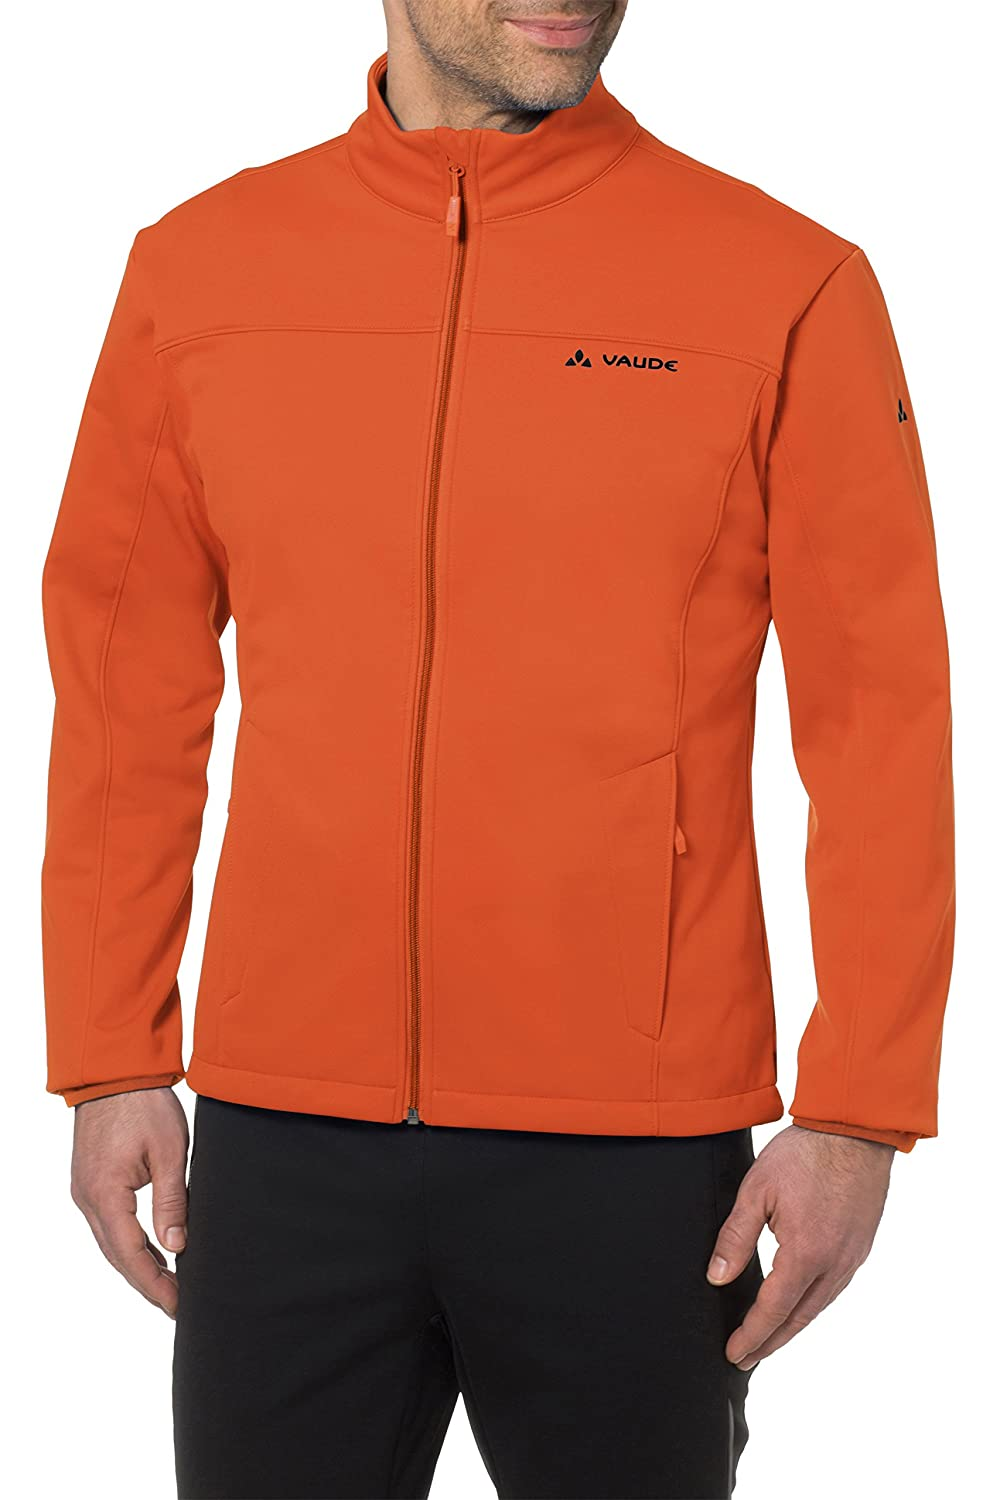 VAUDE Herren Jacke Mens Wintry Jacket II